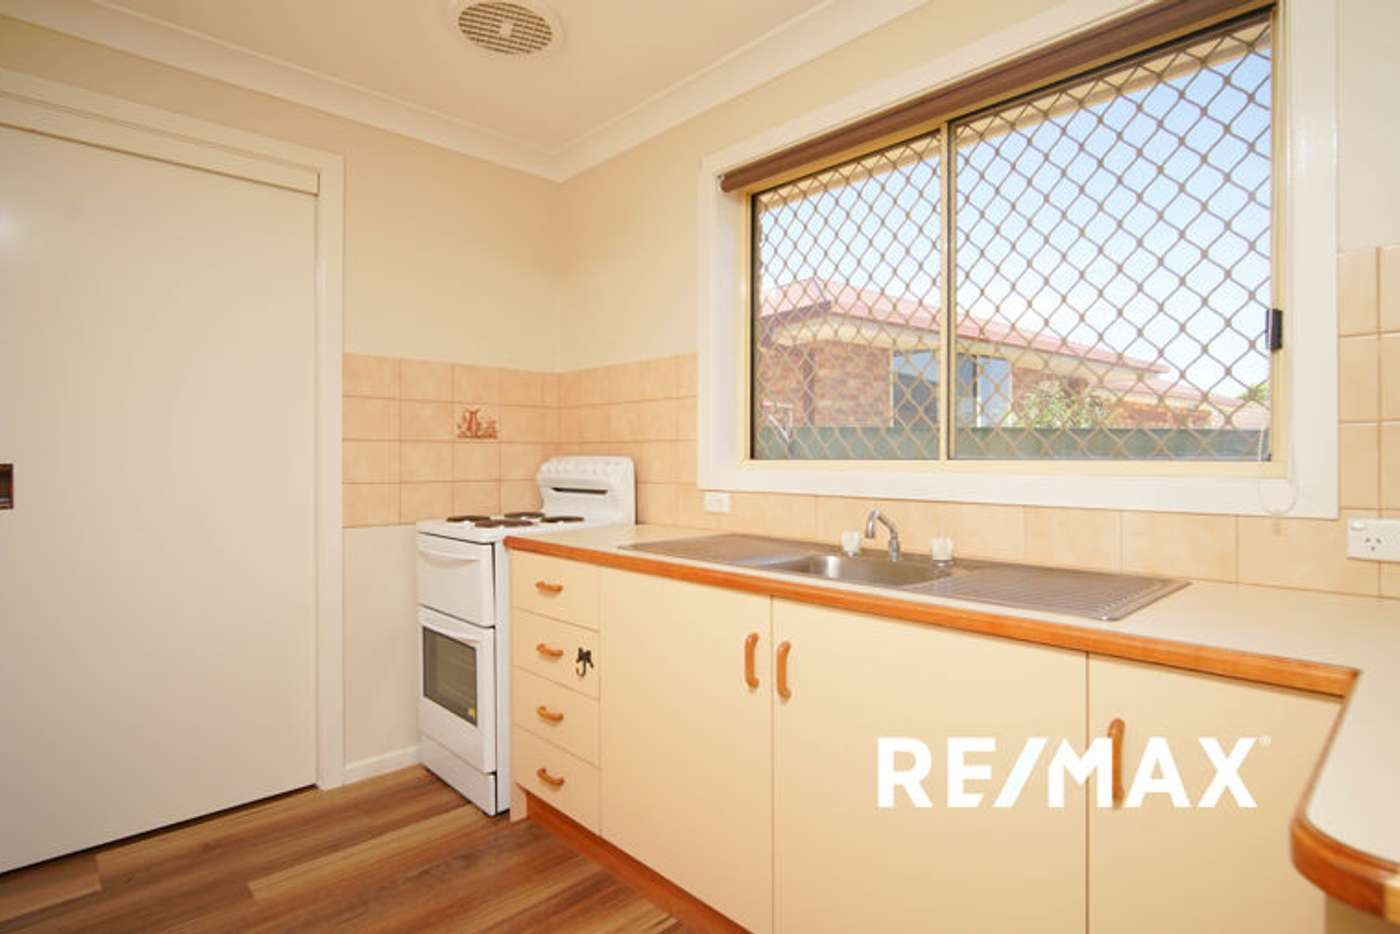 Sixth view of Homely house listing, 8/95 Balleroo Crescent, Glenfield Park NSW 2650